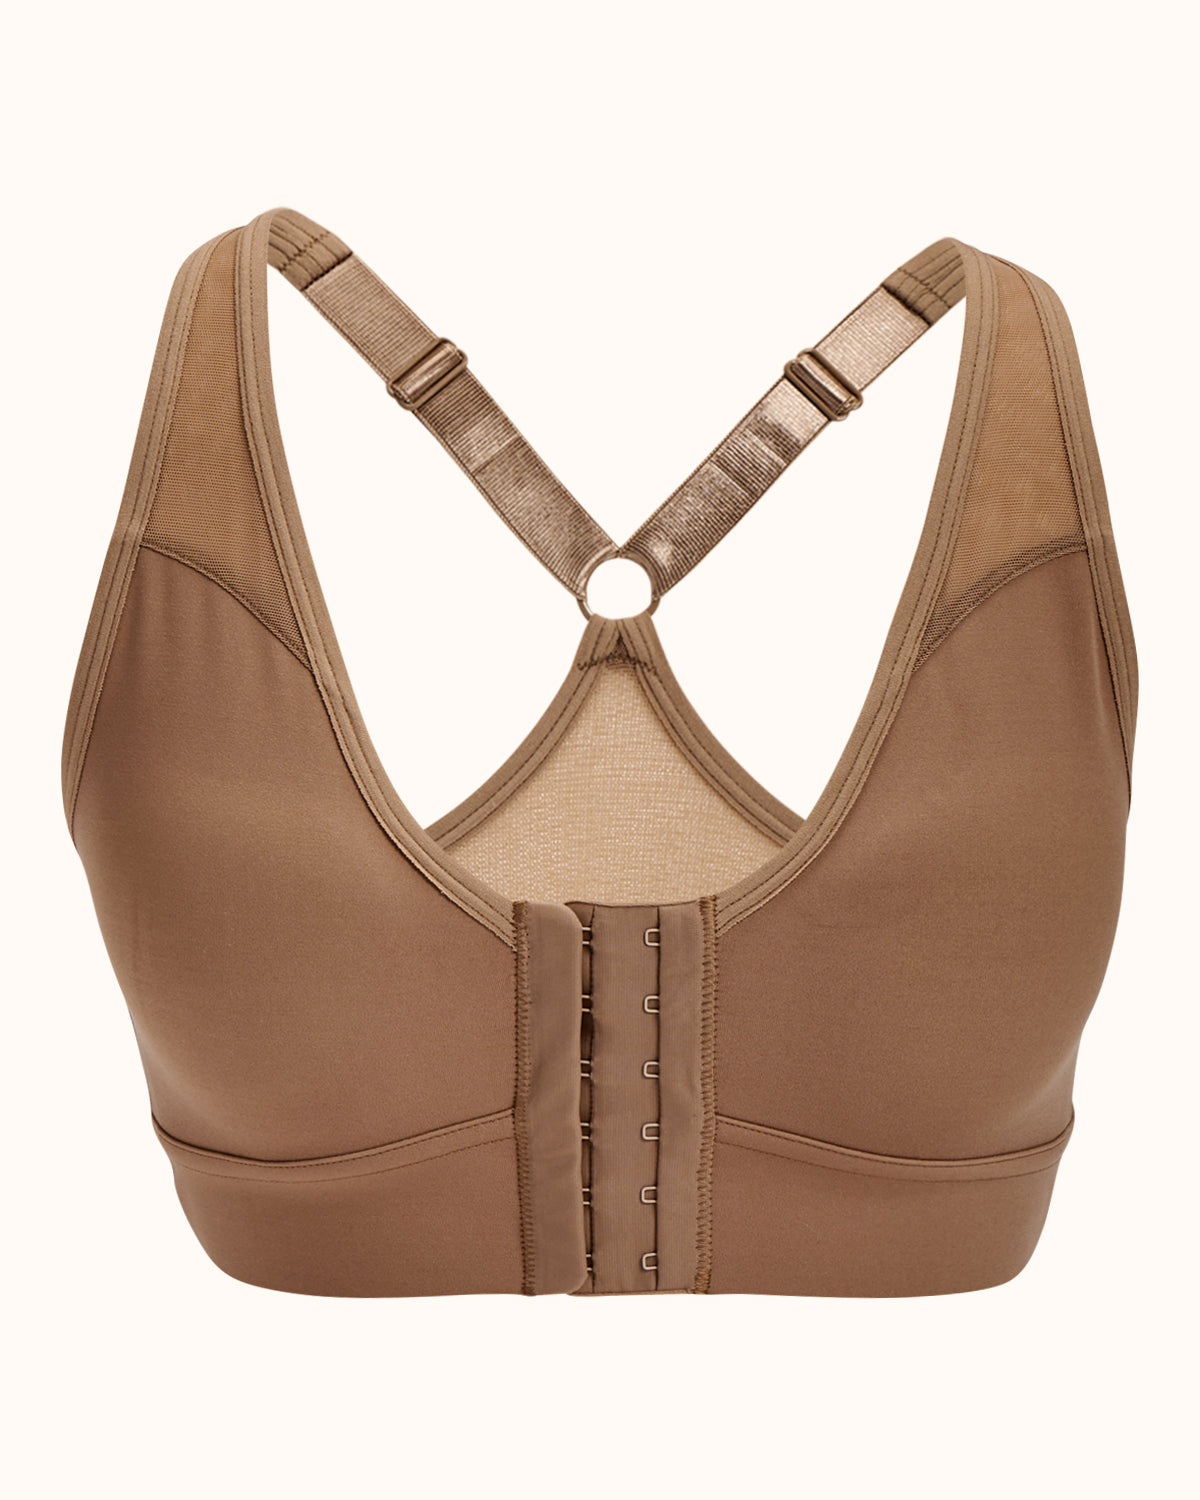 Sand, pocketed front closure sports bra with adjustable straps, mesh paneling on cross back, soft material and wireless cups.